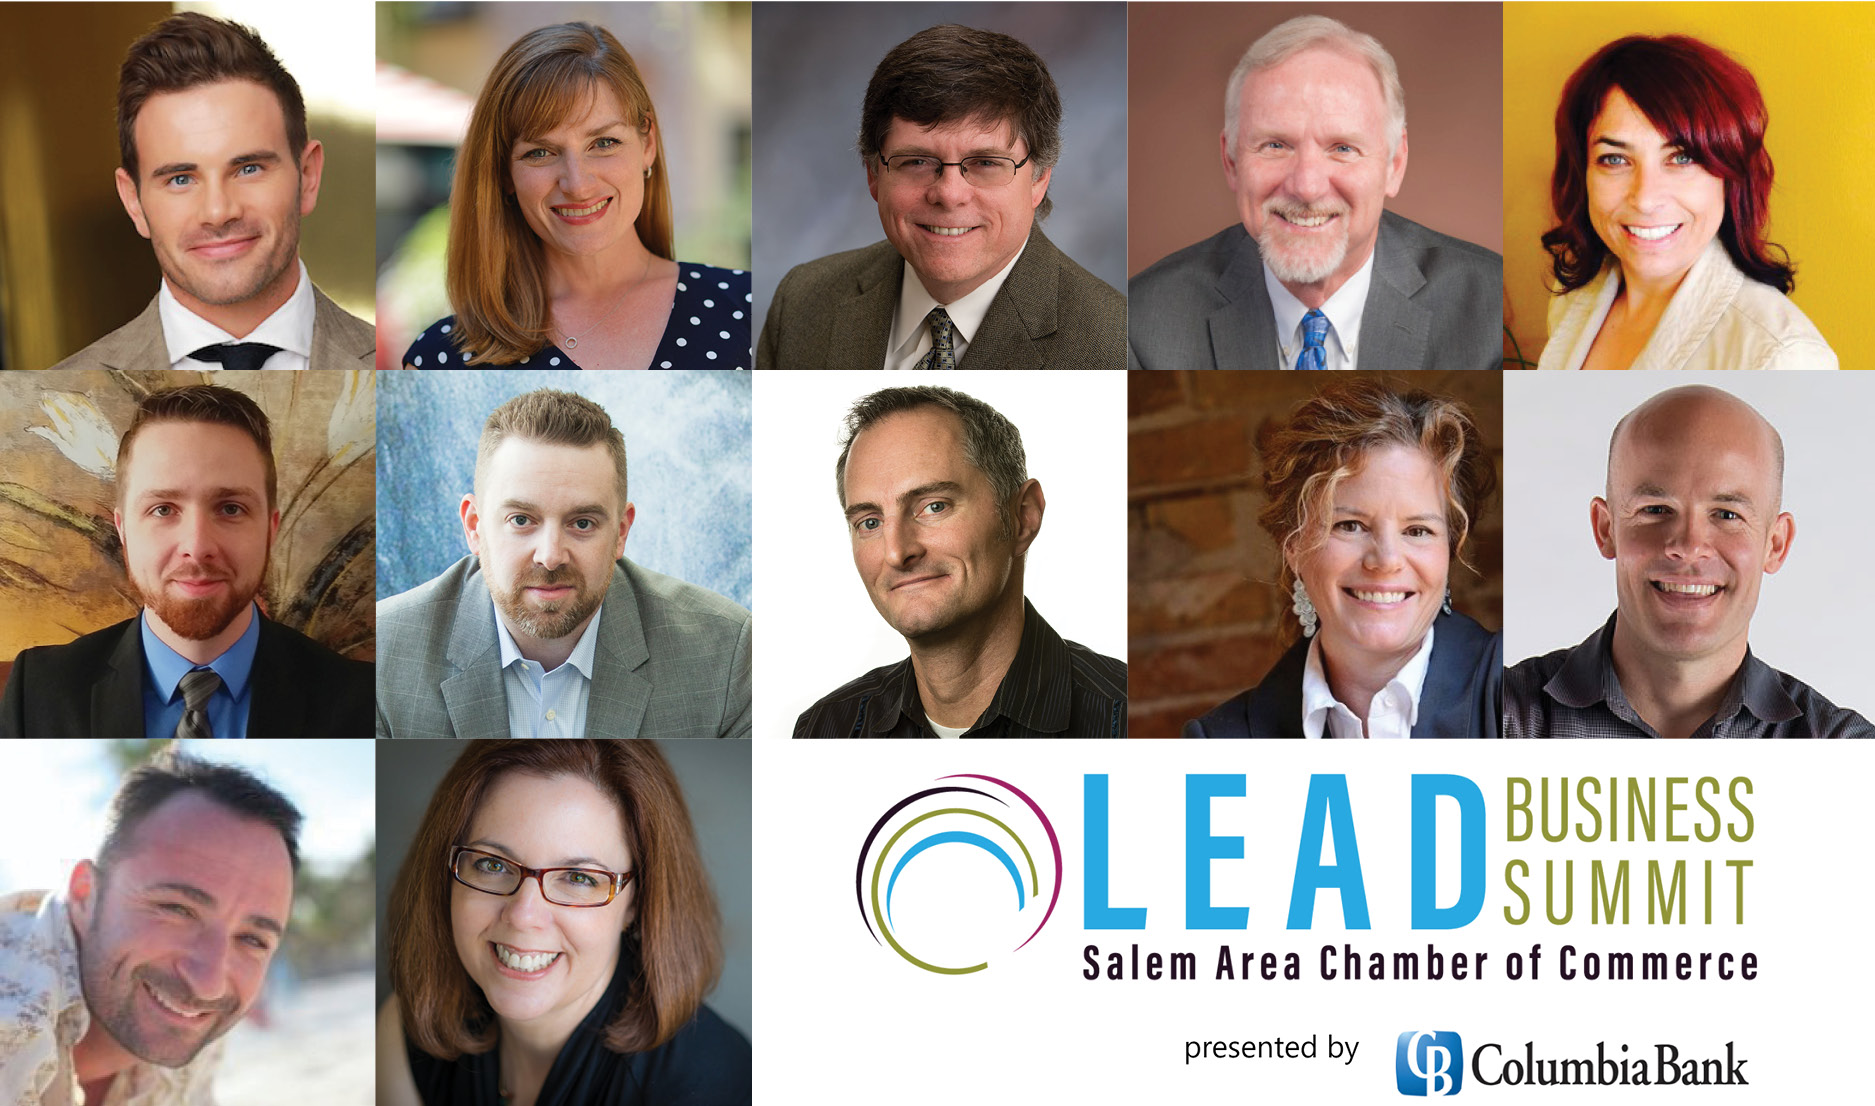 LEAD Business Summit speakers